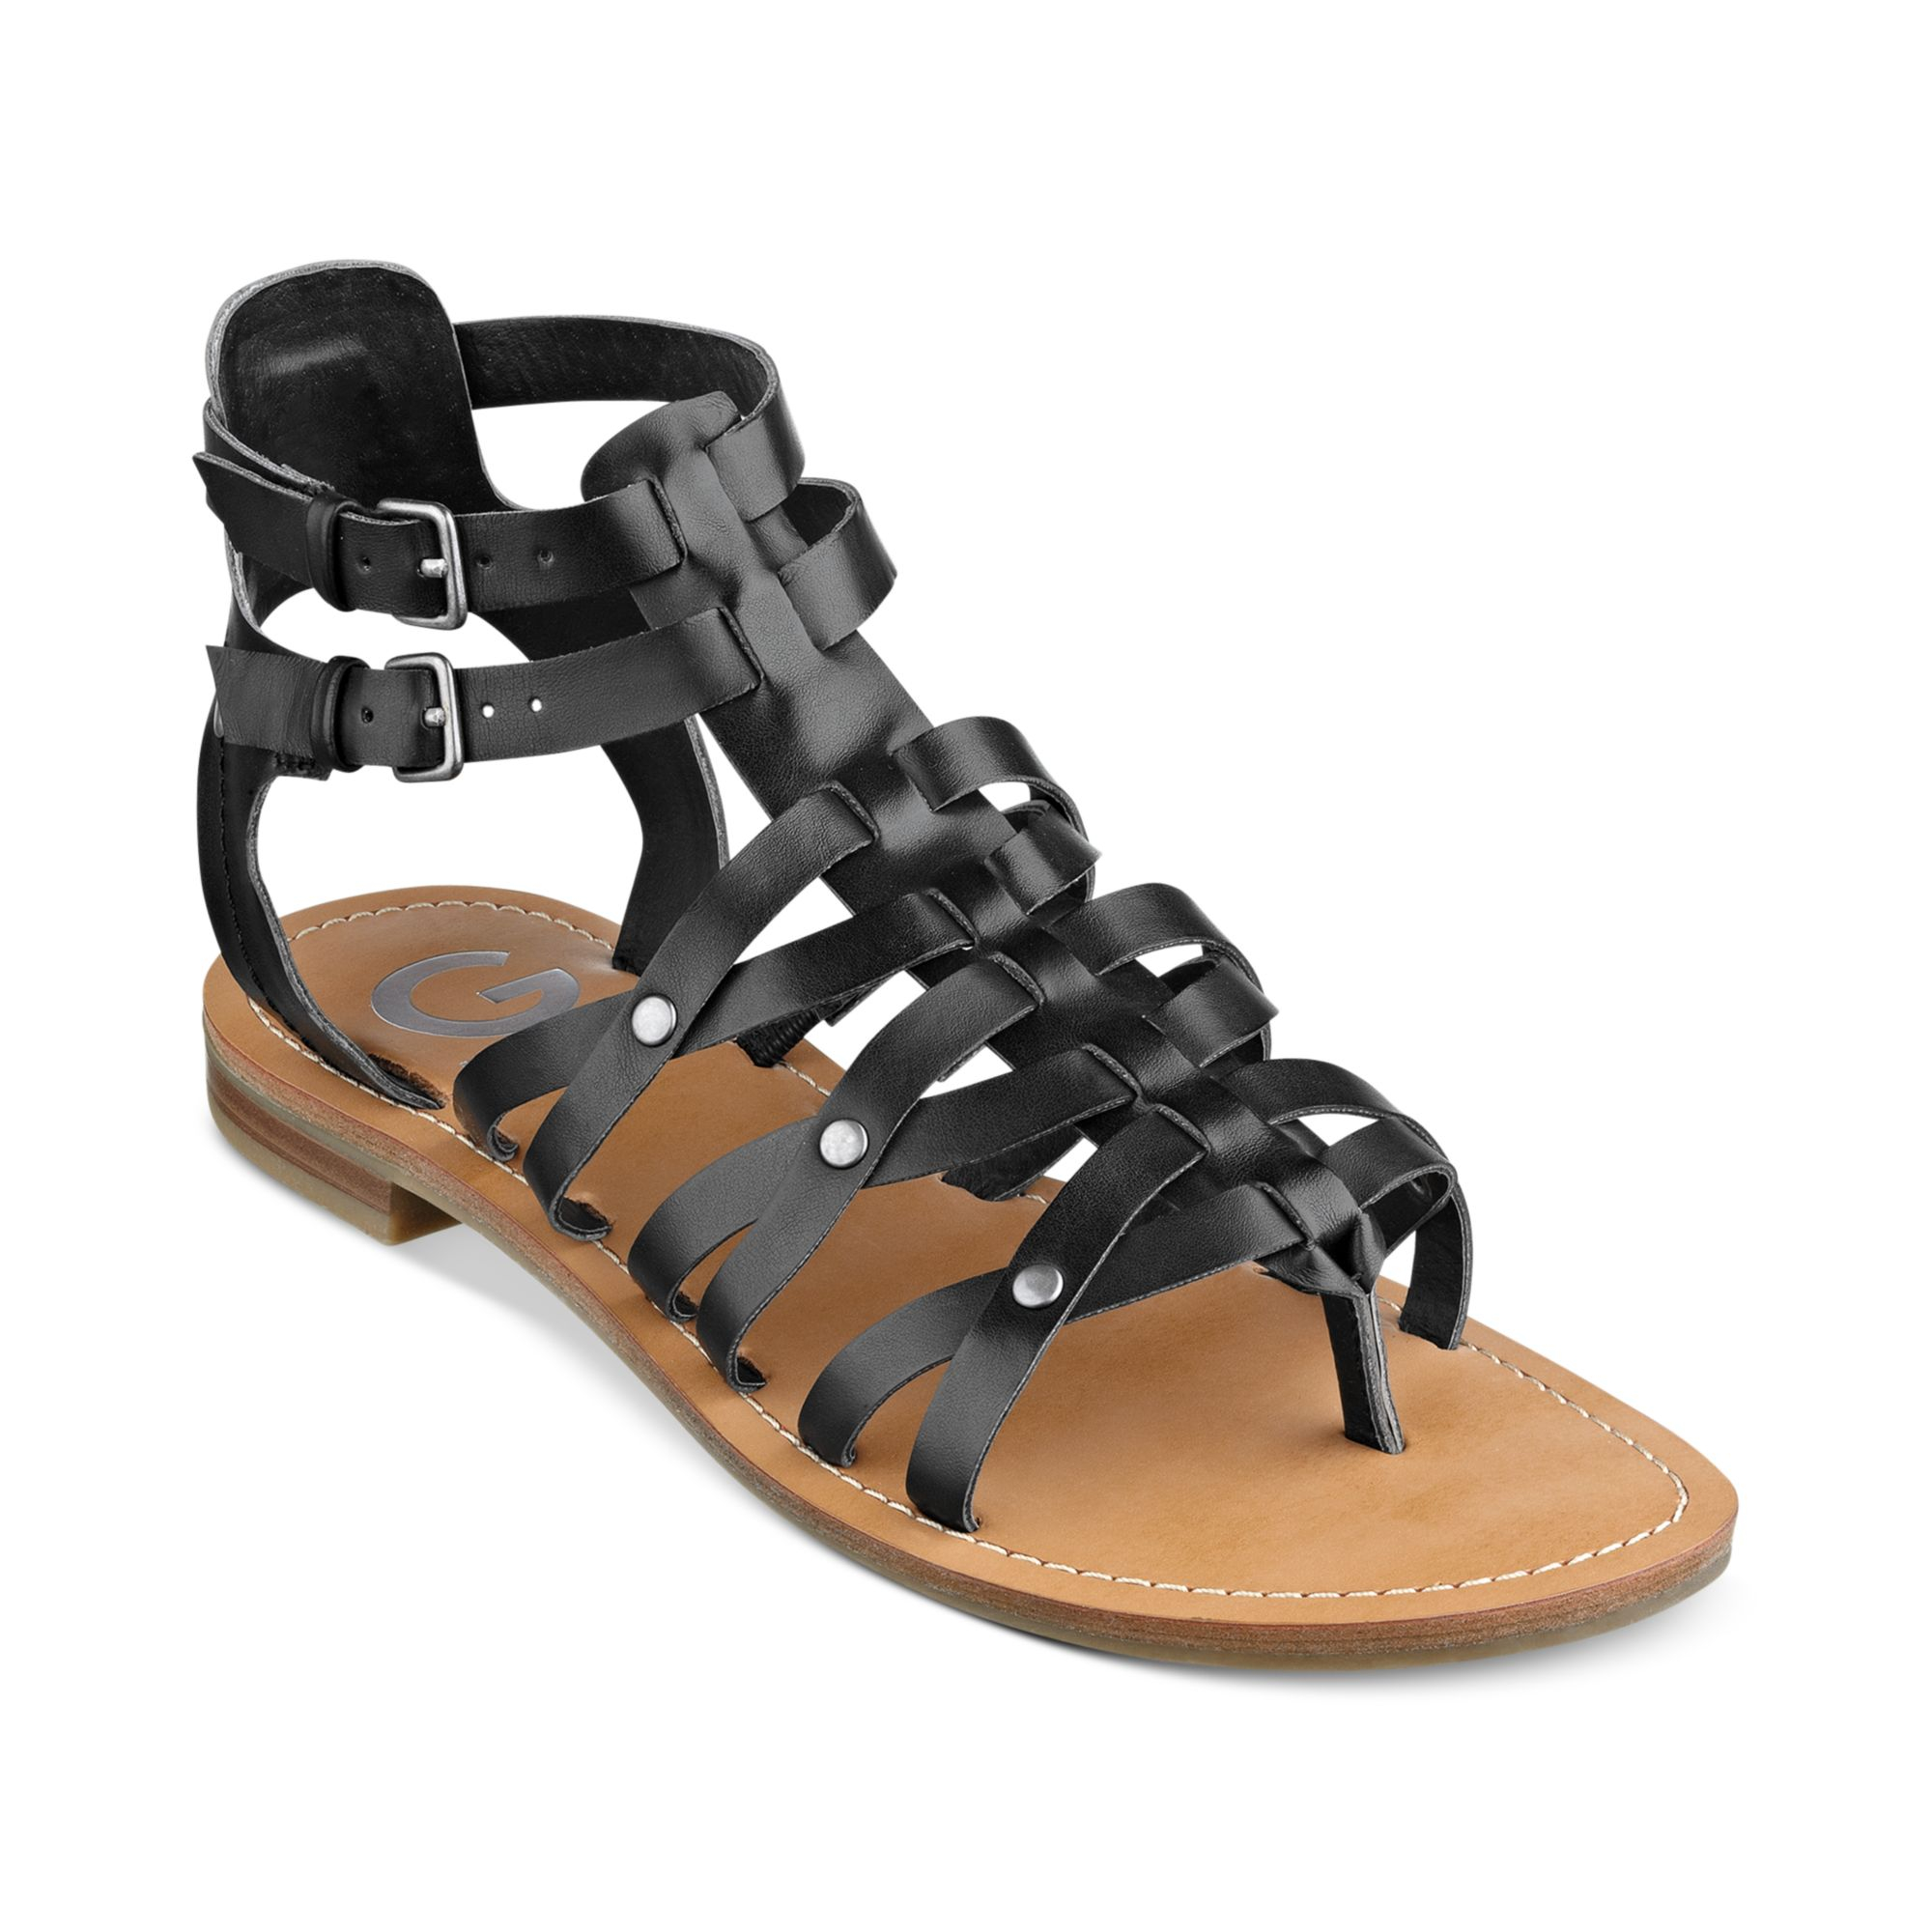 Perfect For All That Comfort And More In A Flat Walking Sandal, The Tourist Gladiator Sandal Would Be A Terrific Choice For A Bit Dressier Choice, The Uberstrappy Nomadic Sandal Is A Lovely Leather Wedge With Lace Up Details For All Women